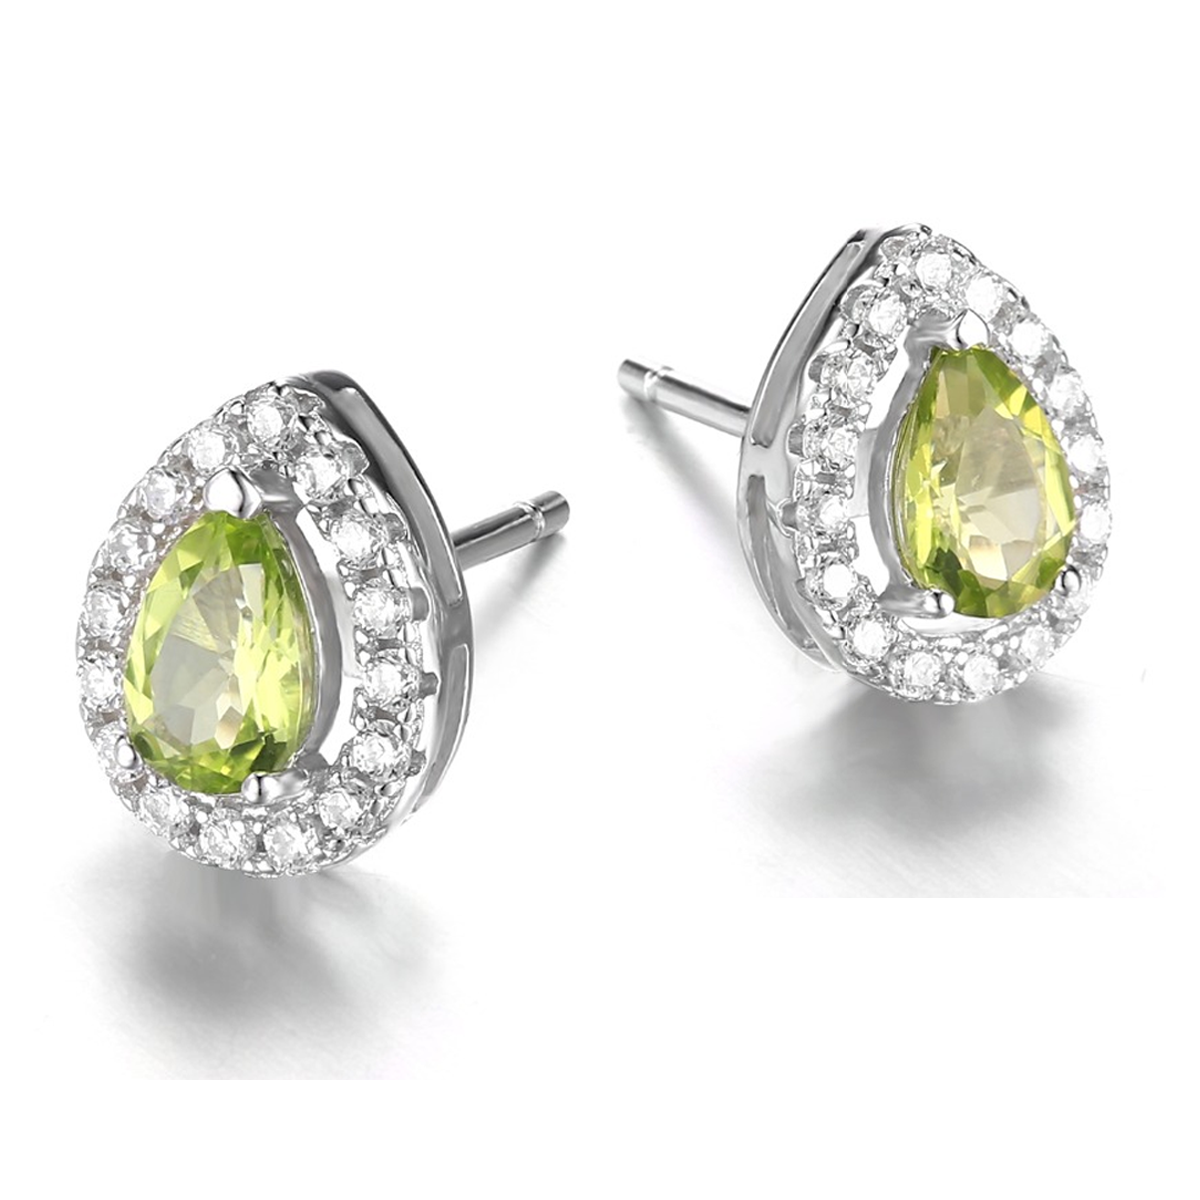 peridot image diamonds gem and earring set earrings gemstone stone jewellery sterling silver with